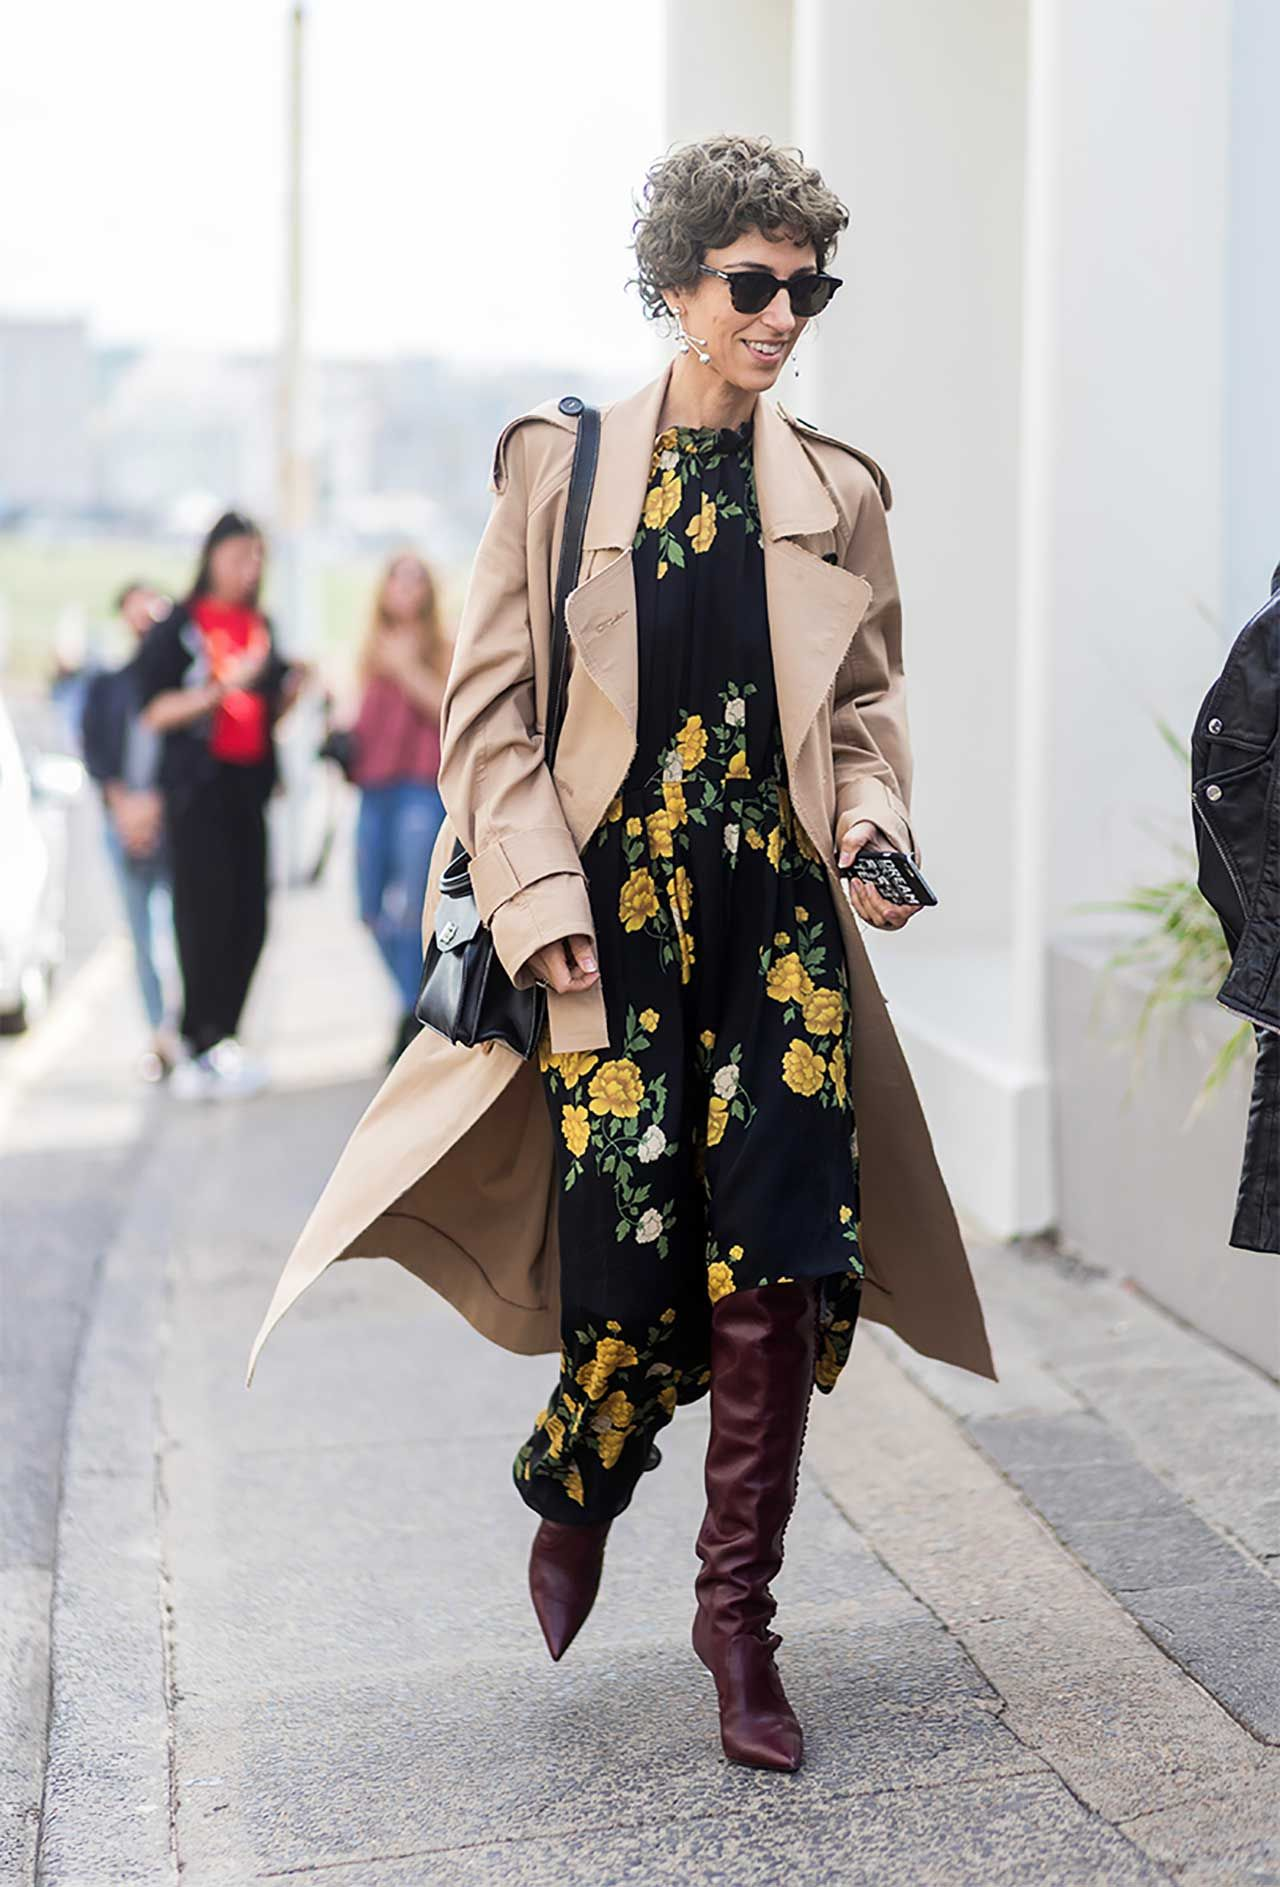 e19e6c391c2716 ... buy good 7cebb da91e how to wear midi dresses slouchy boots outfits  ideas yasmin sewell Trendy ...